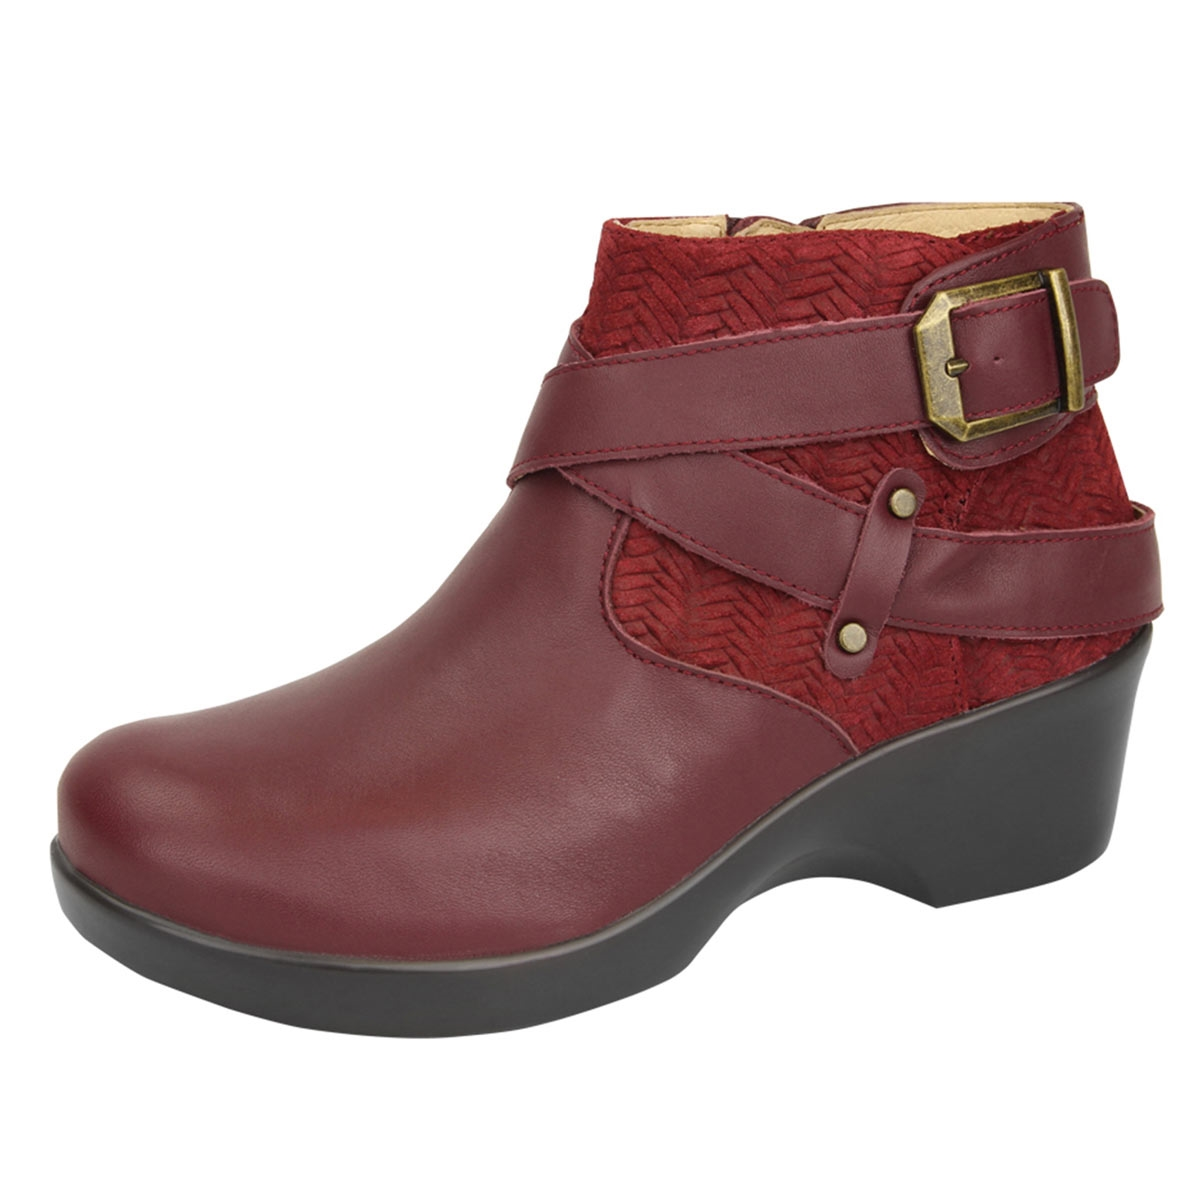 The Style Icon Burgundy Ankle Boots will inspire outfits for seasons to come! Vegan leather shapes a pointed toe and